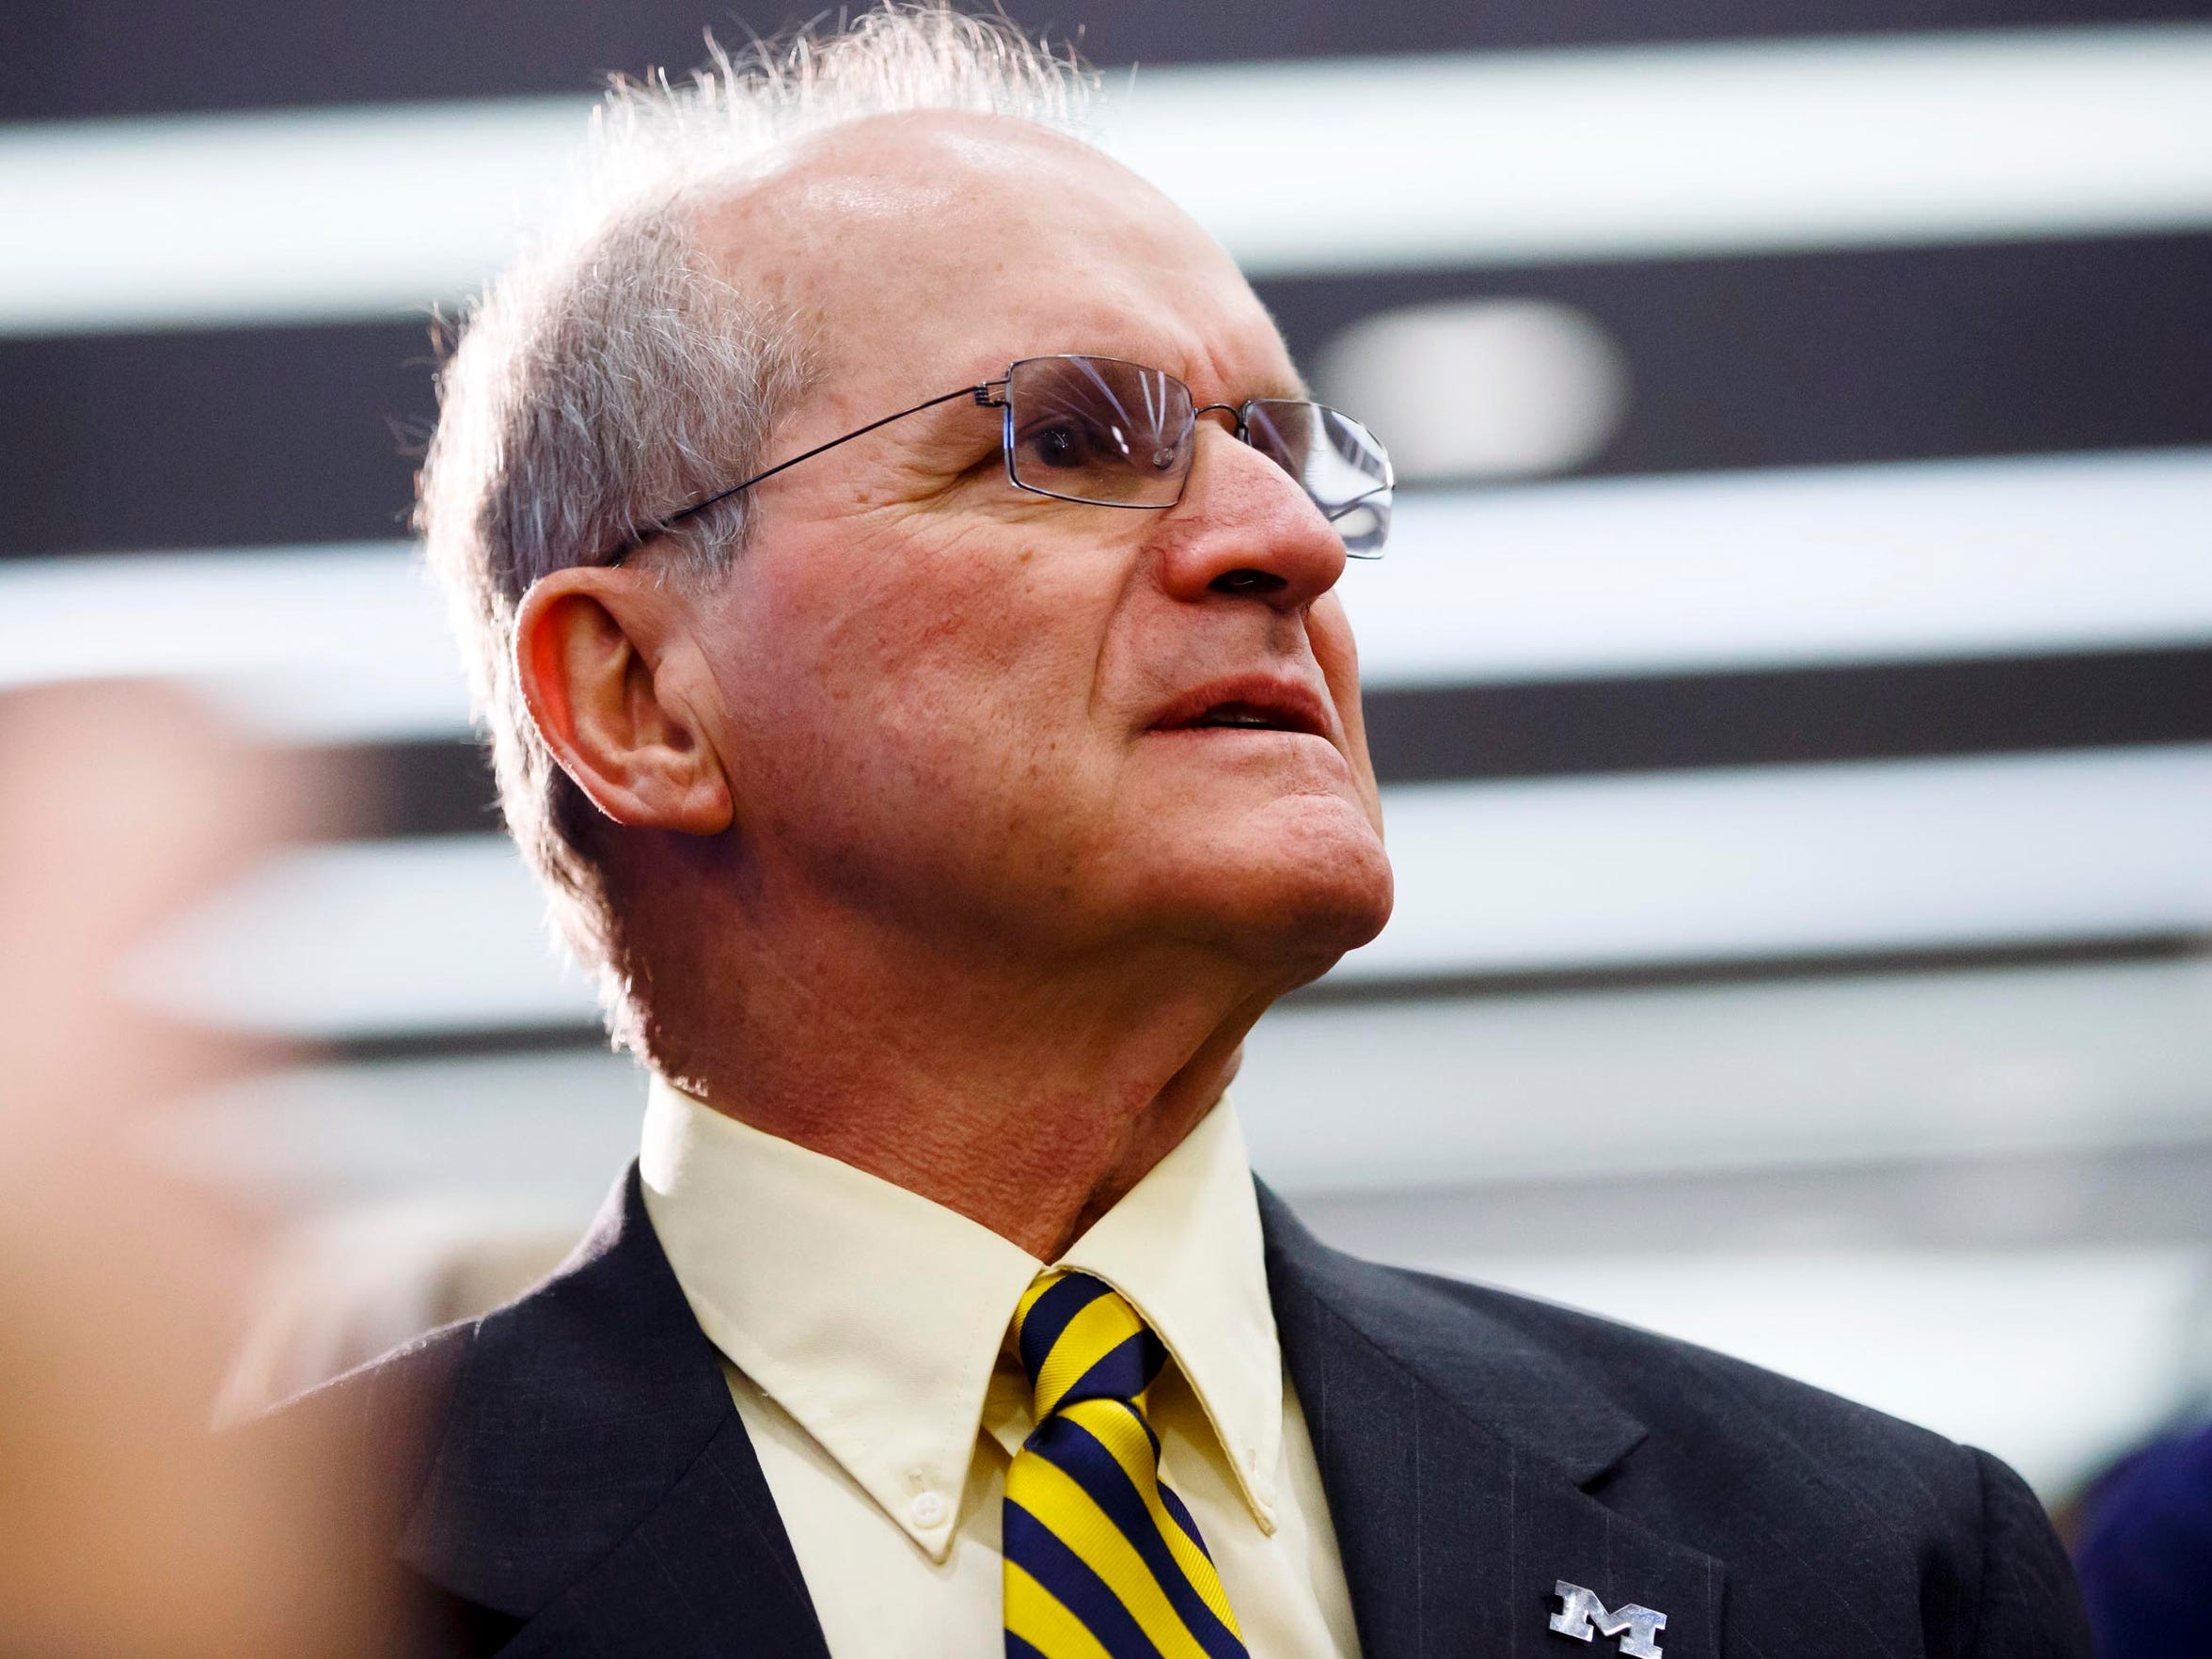 Crestline native Jack Harbaugh as his son, Jim, is introduced as Michigan's new head football coach last December.